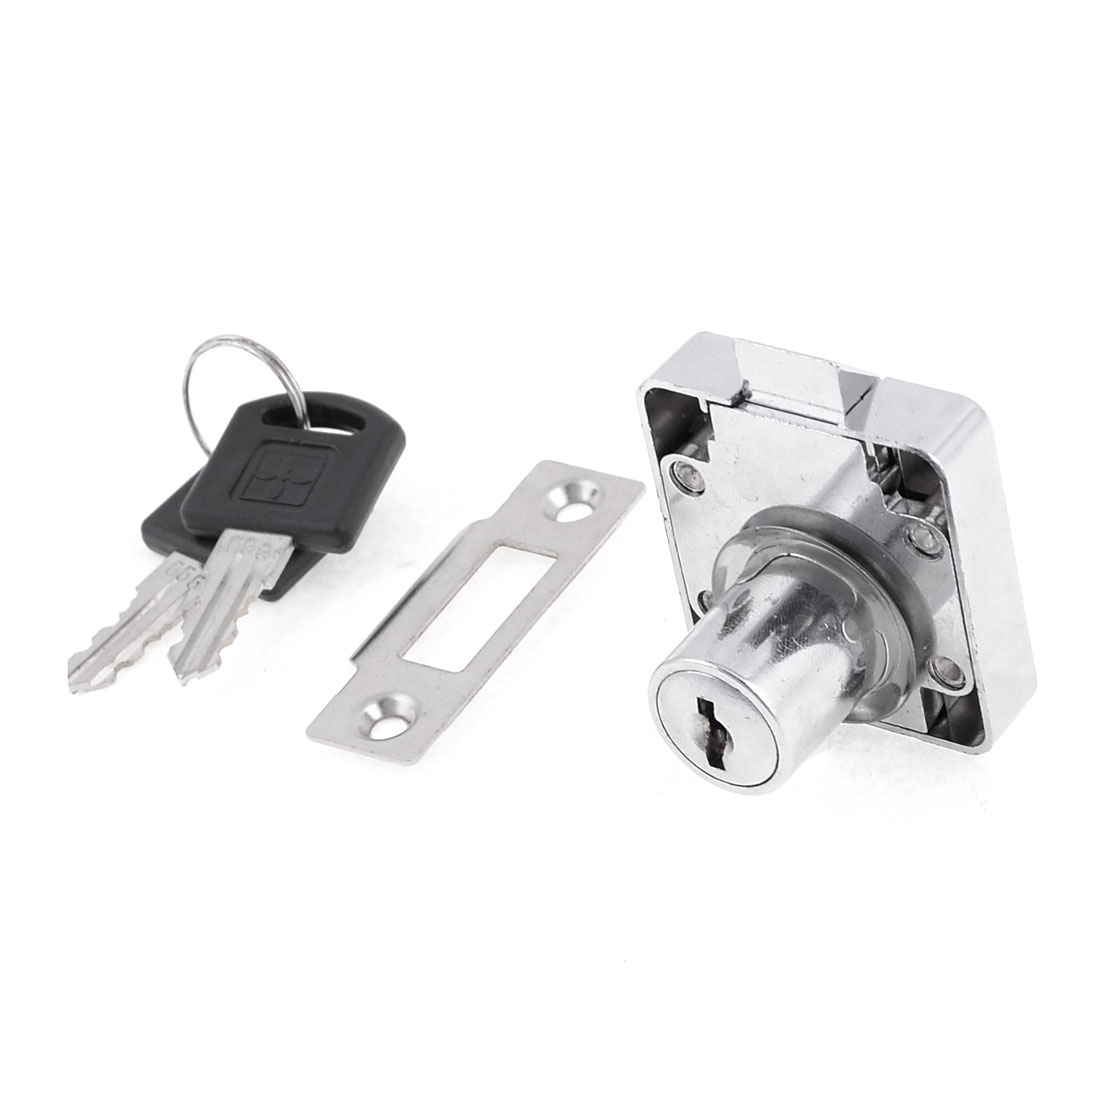 41mm x 39mm Furniture Fitting Square Plate Glass Door Lock Silver Tone w Keys